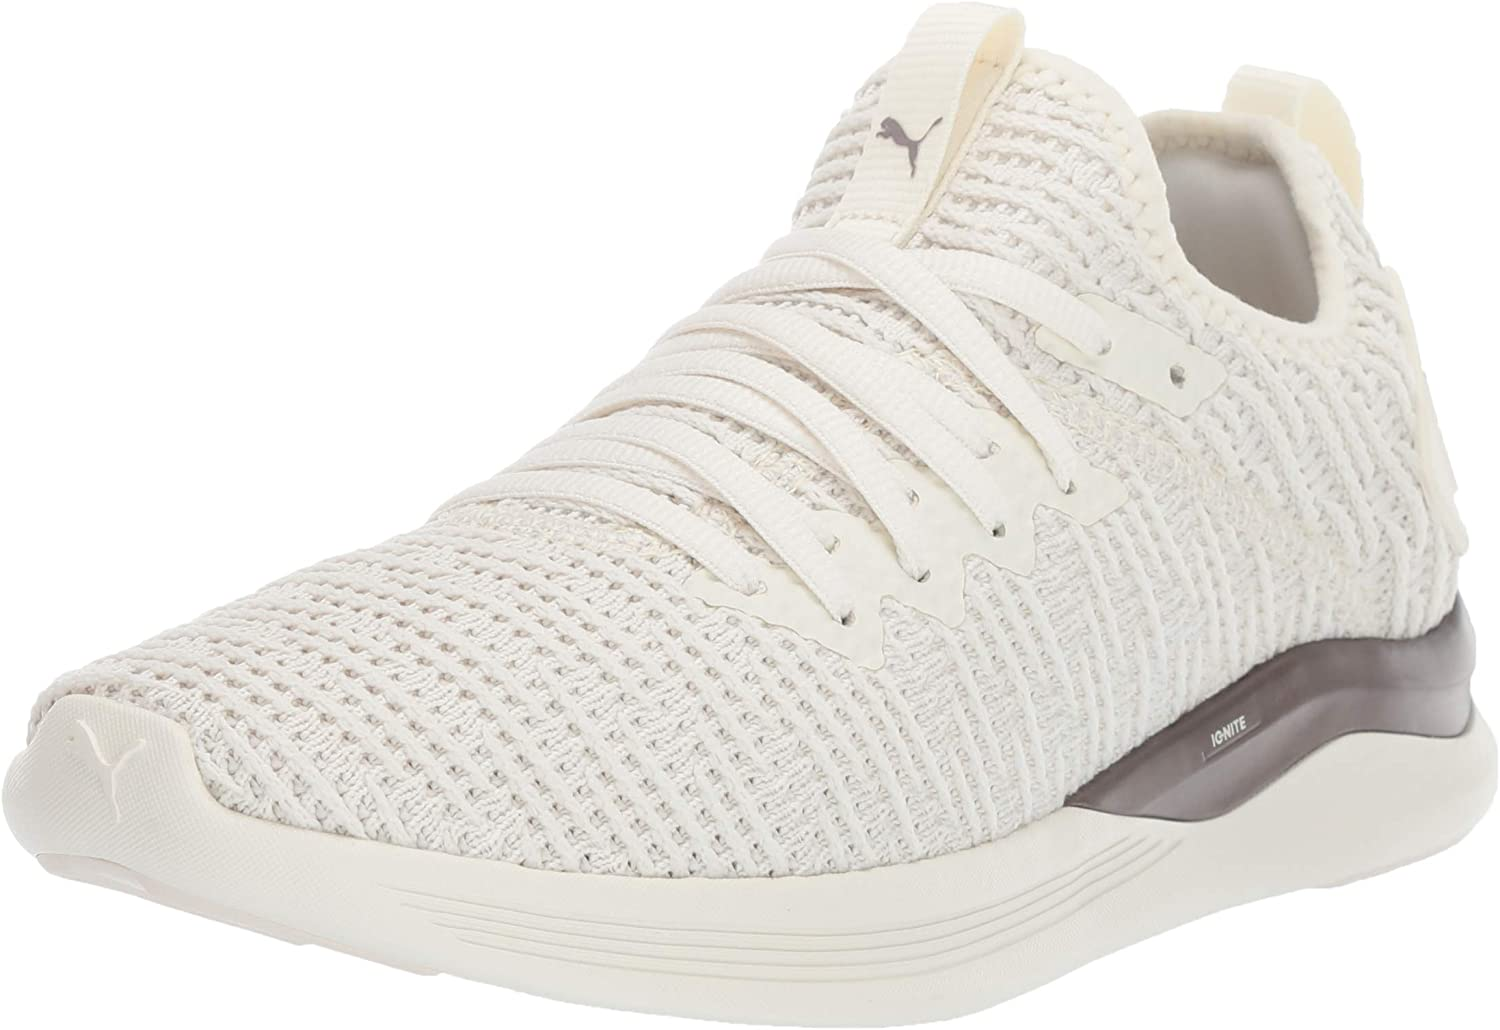 PUMA Womens Ignite Flash Luxe WN's Sneakers